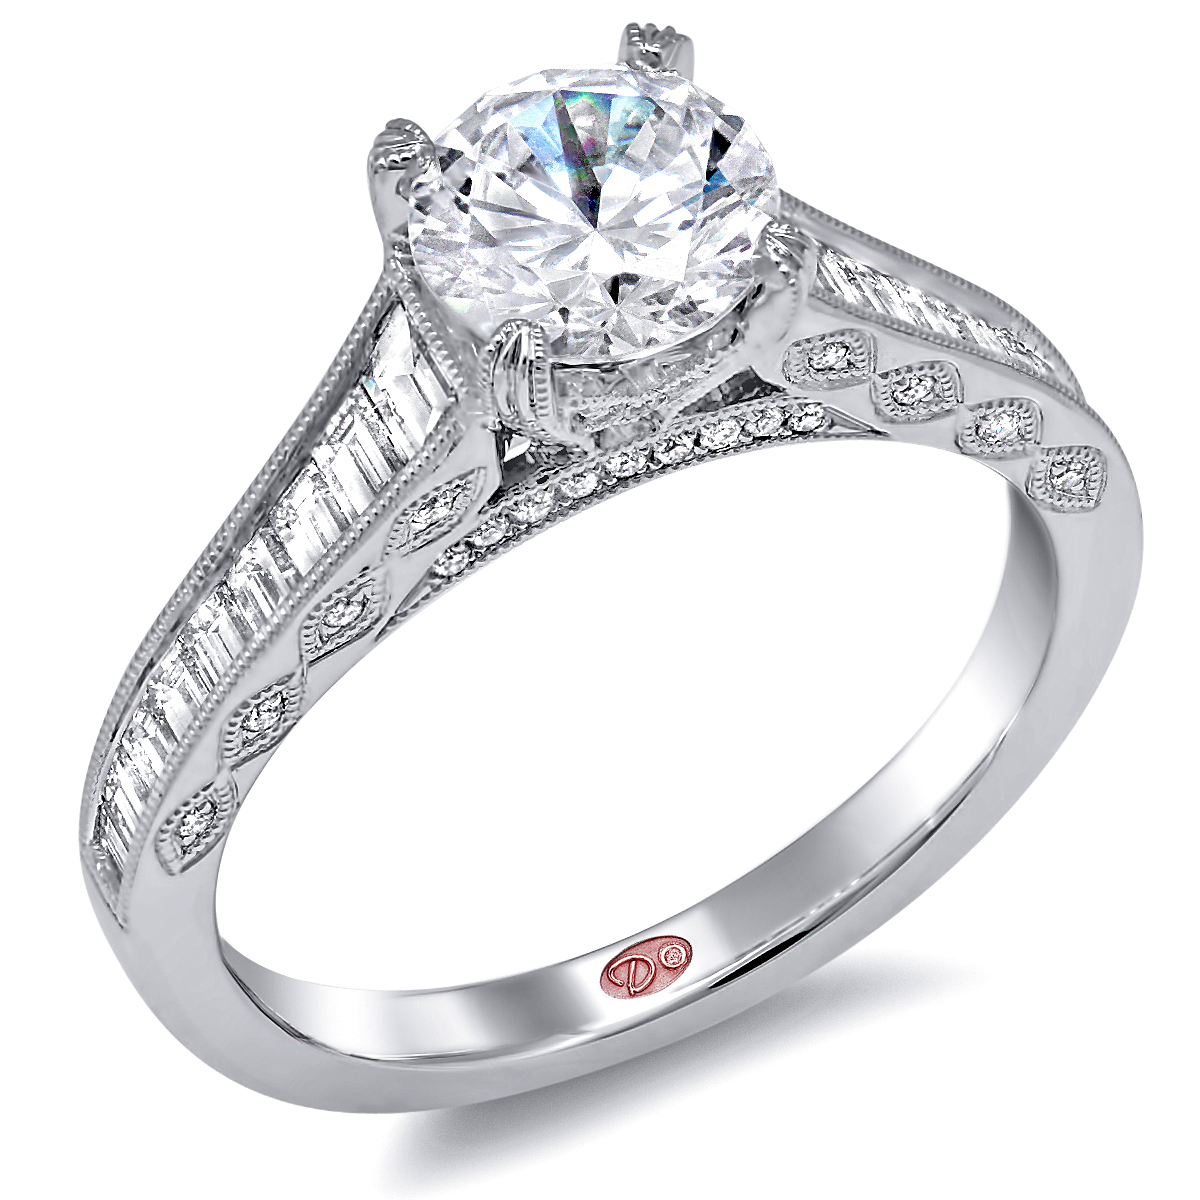 Designer Engagement Rings In Ft. Myers